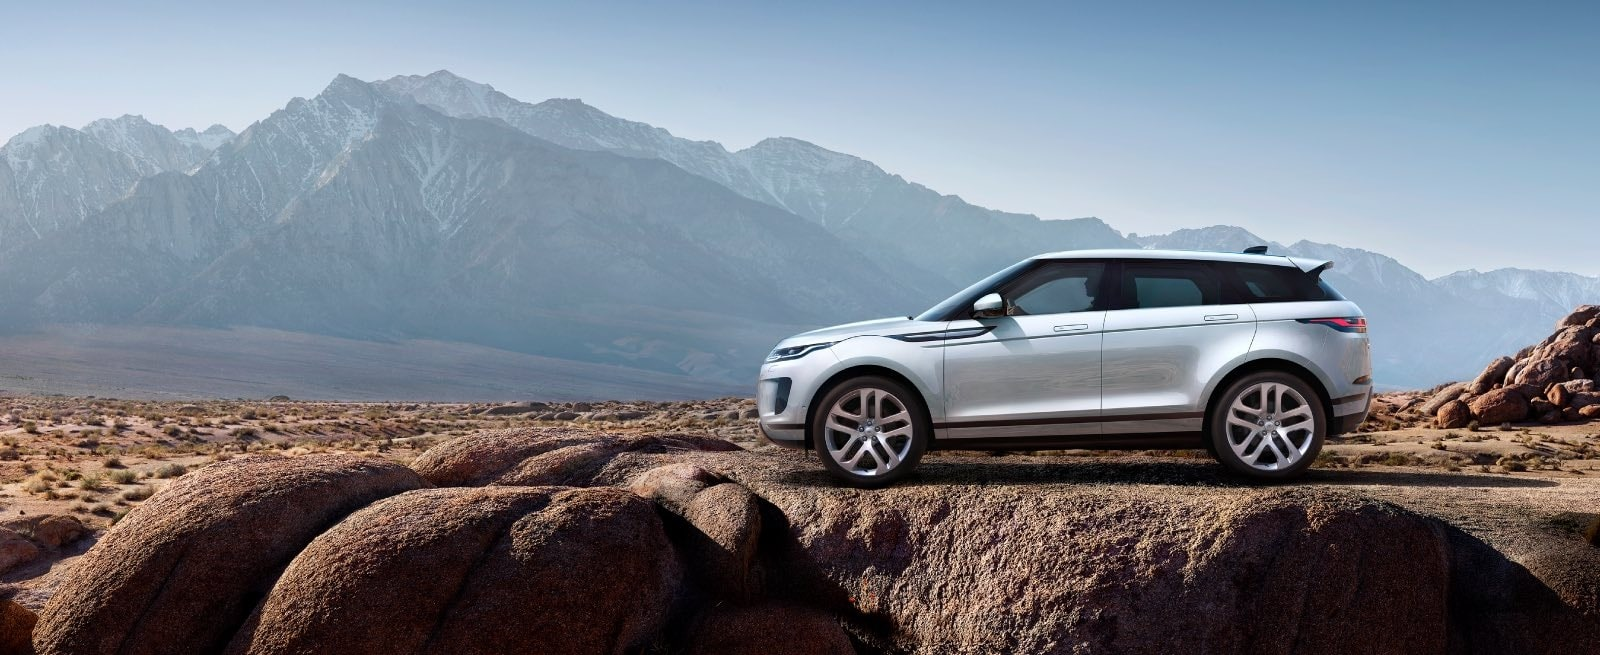 A White Range Rover Evoque Parked On The Edge of A Cliff